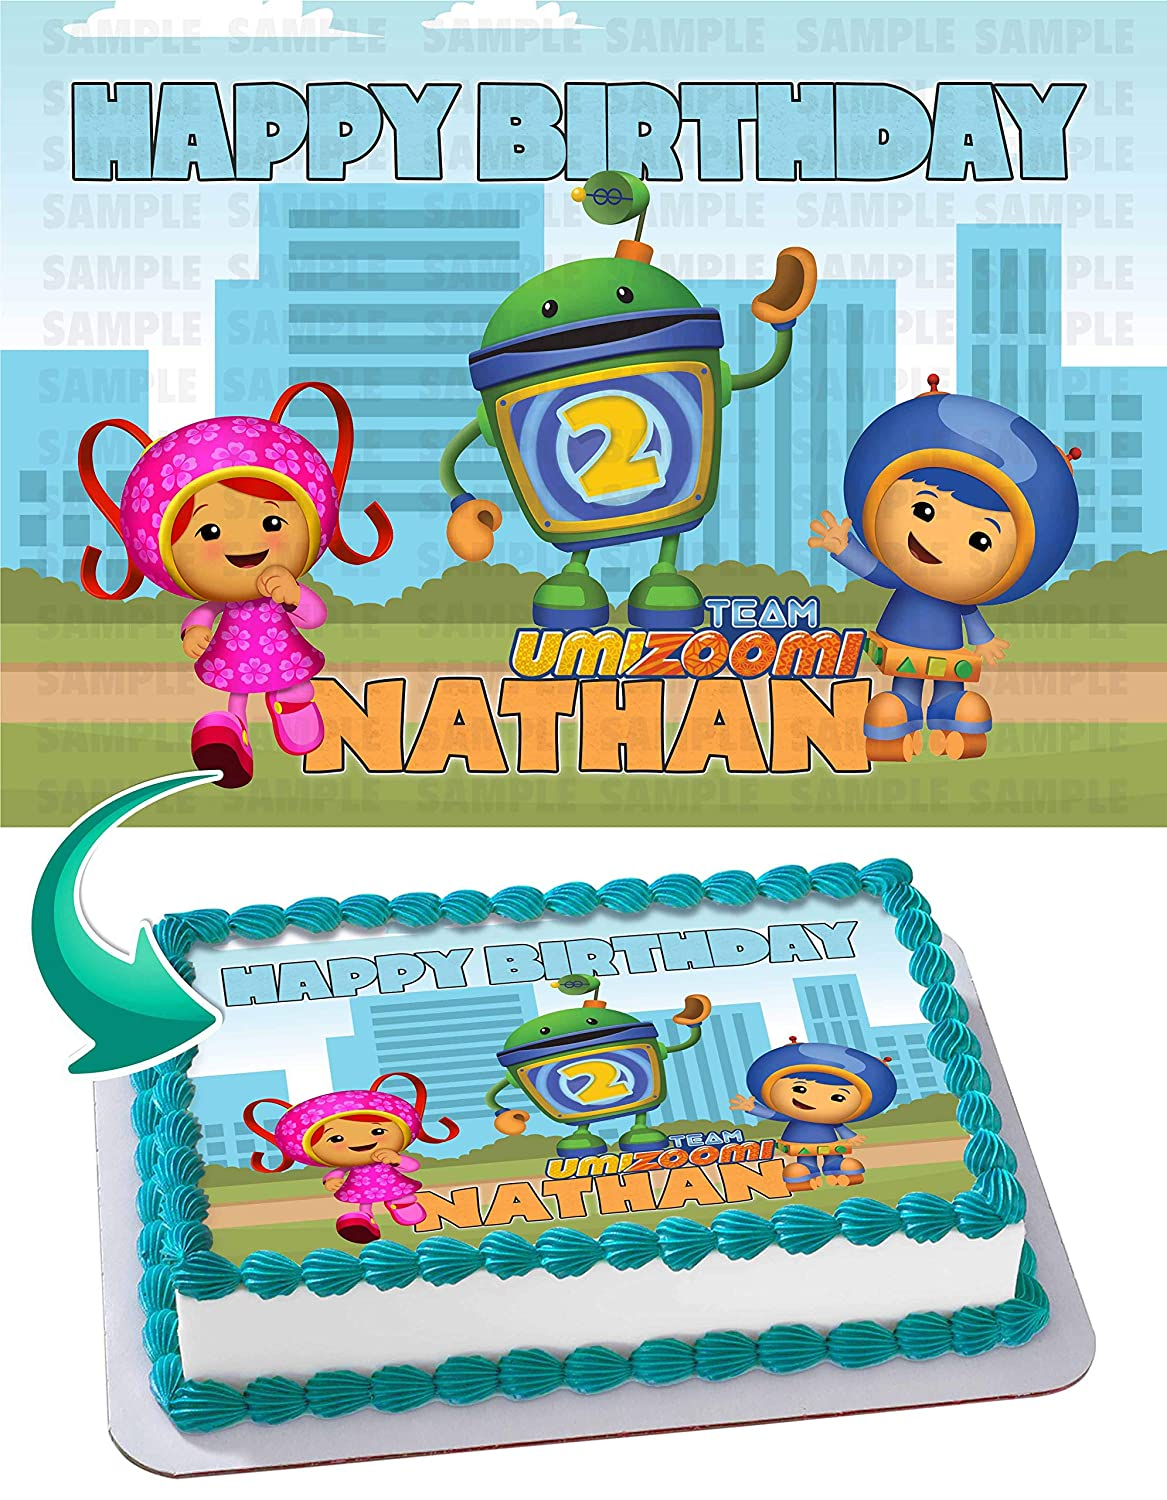 Team Umizoomi Birthday Cake Personalized Toppers Edible Frosting Photo Icing Sugar Paper A4 Sheet 1 4 Best Quality Image For Amazon